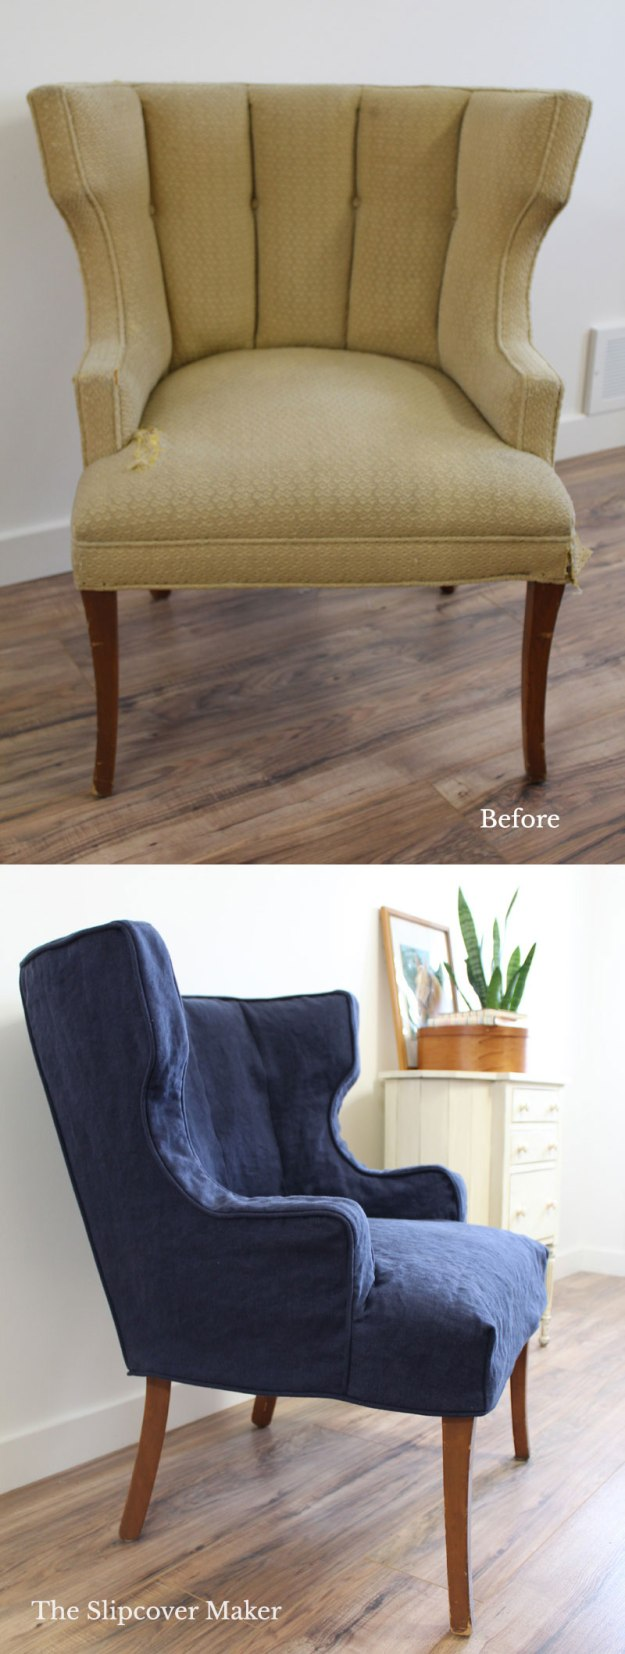 Washed Navy Linen Chair Slipcover